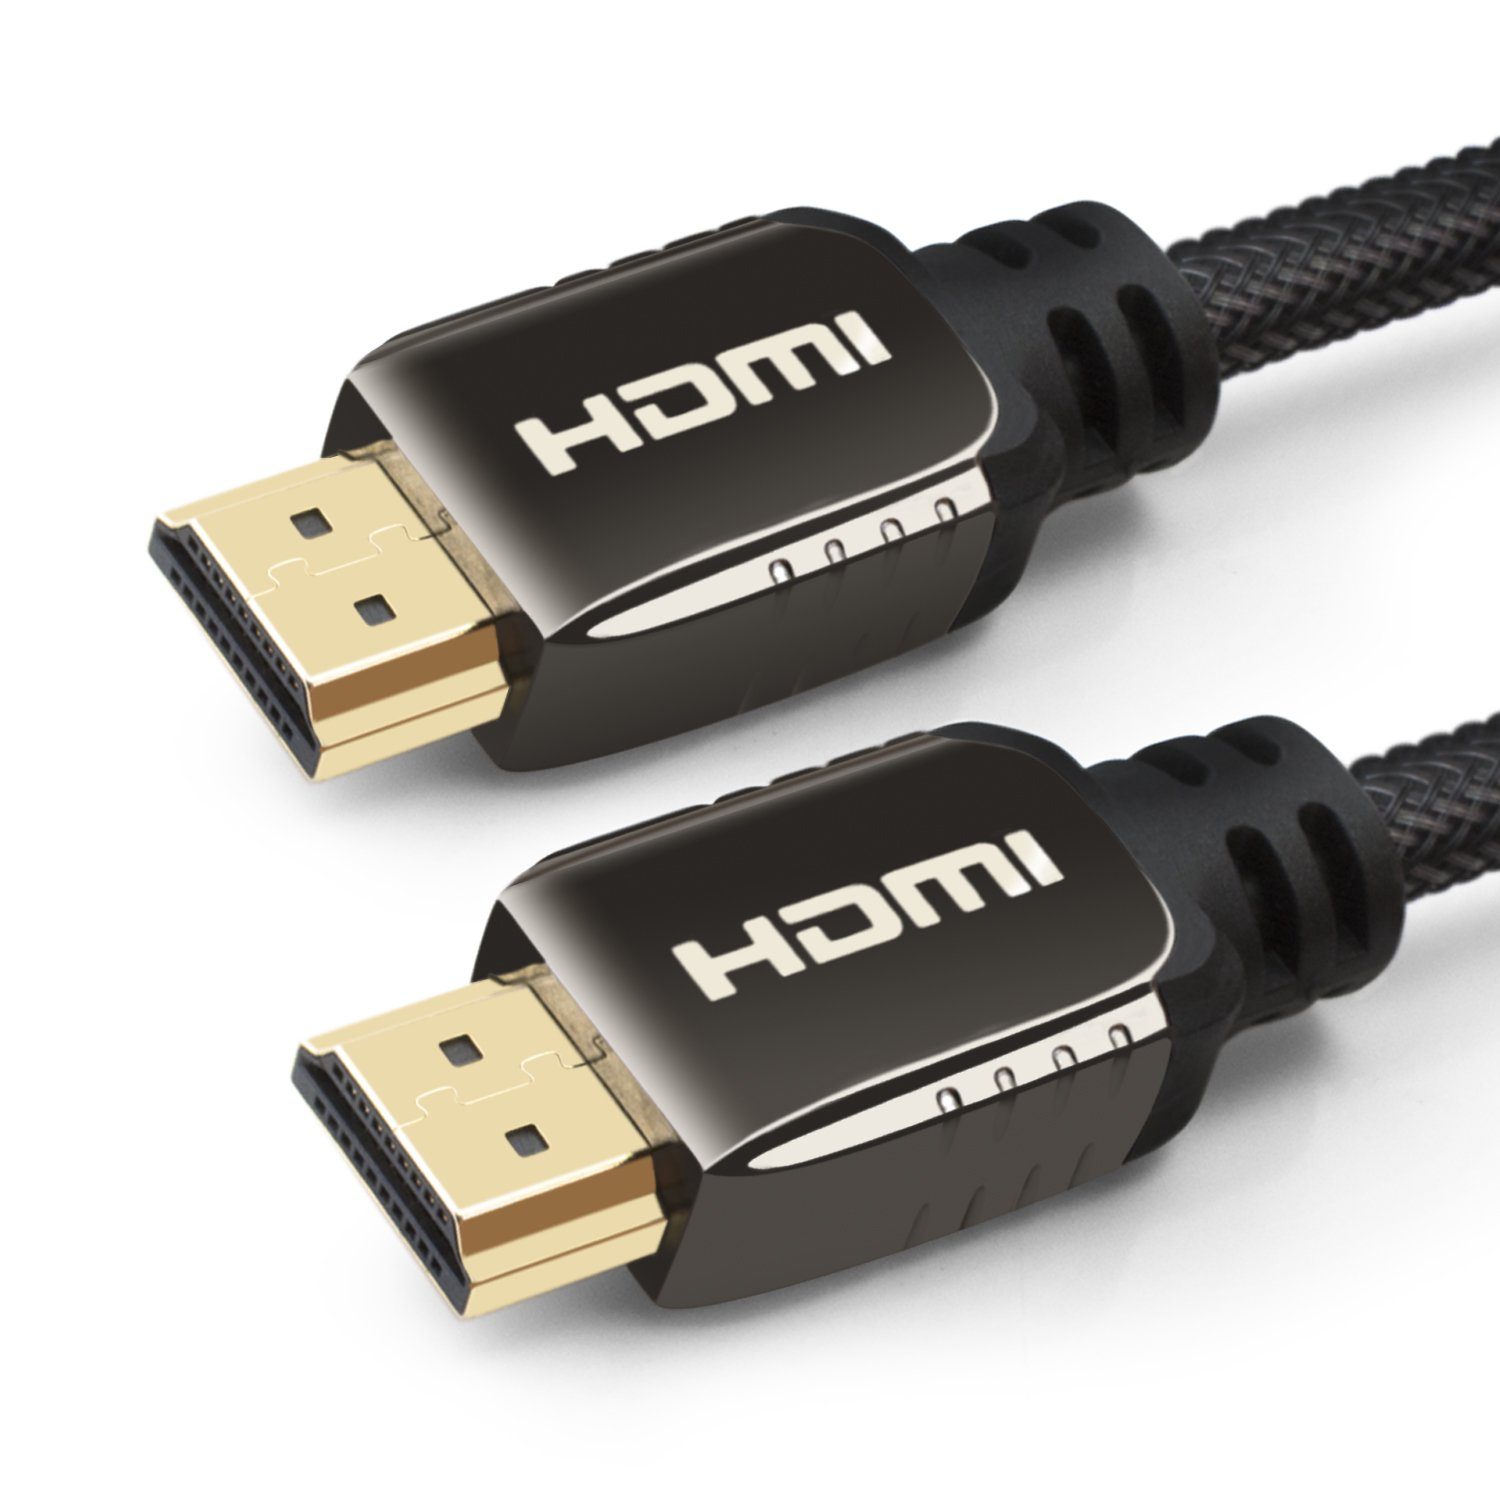 Cable HDMI 7,5M - HDMI 1.4 / 2.0 a/b - Ultra HD 2160p (4K) / Full HD 1080p - Cable de alta velocidad con 3D, Ethernet y Canal de Retorno de Audio (ARC) - Blindaje triple y nylon